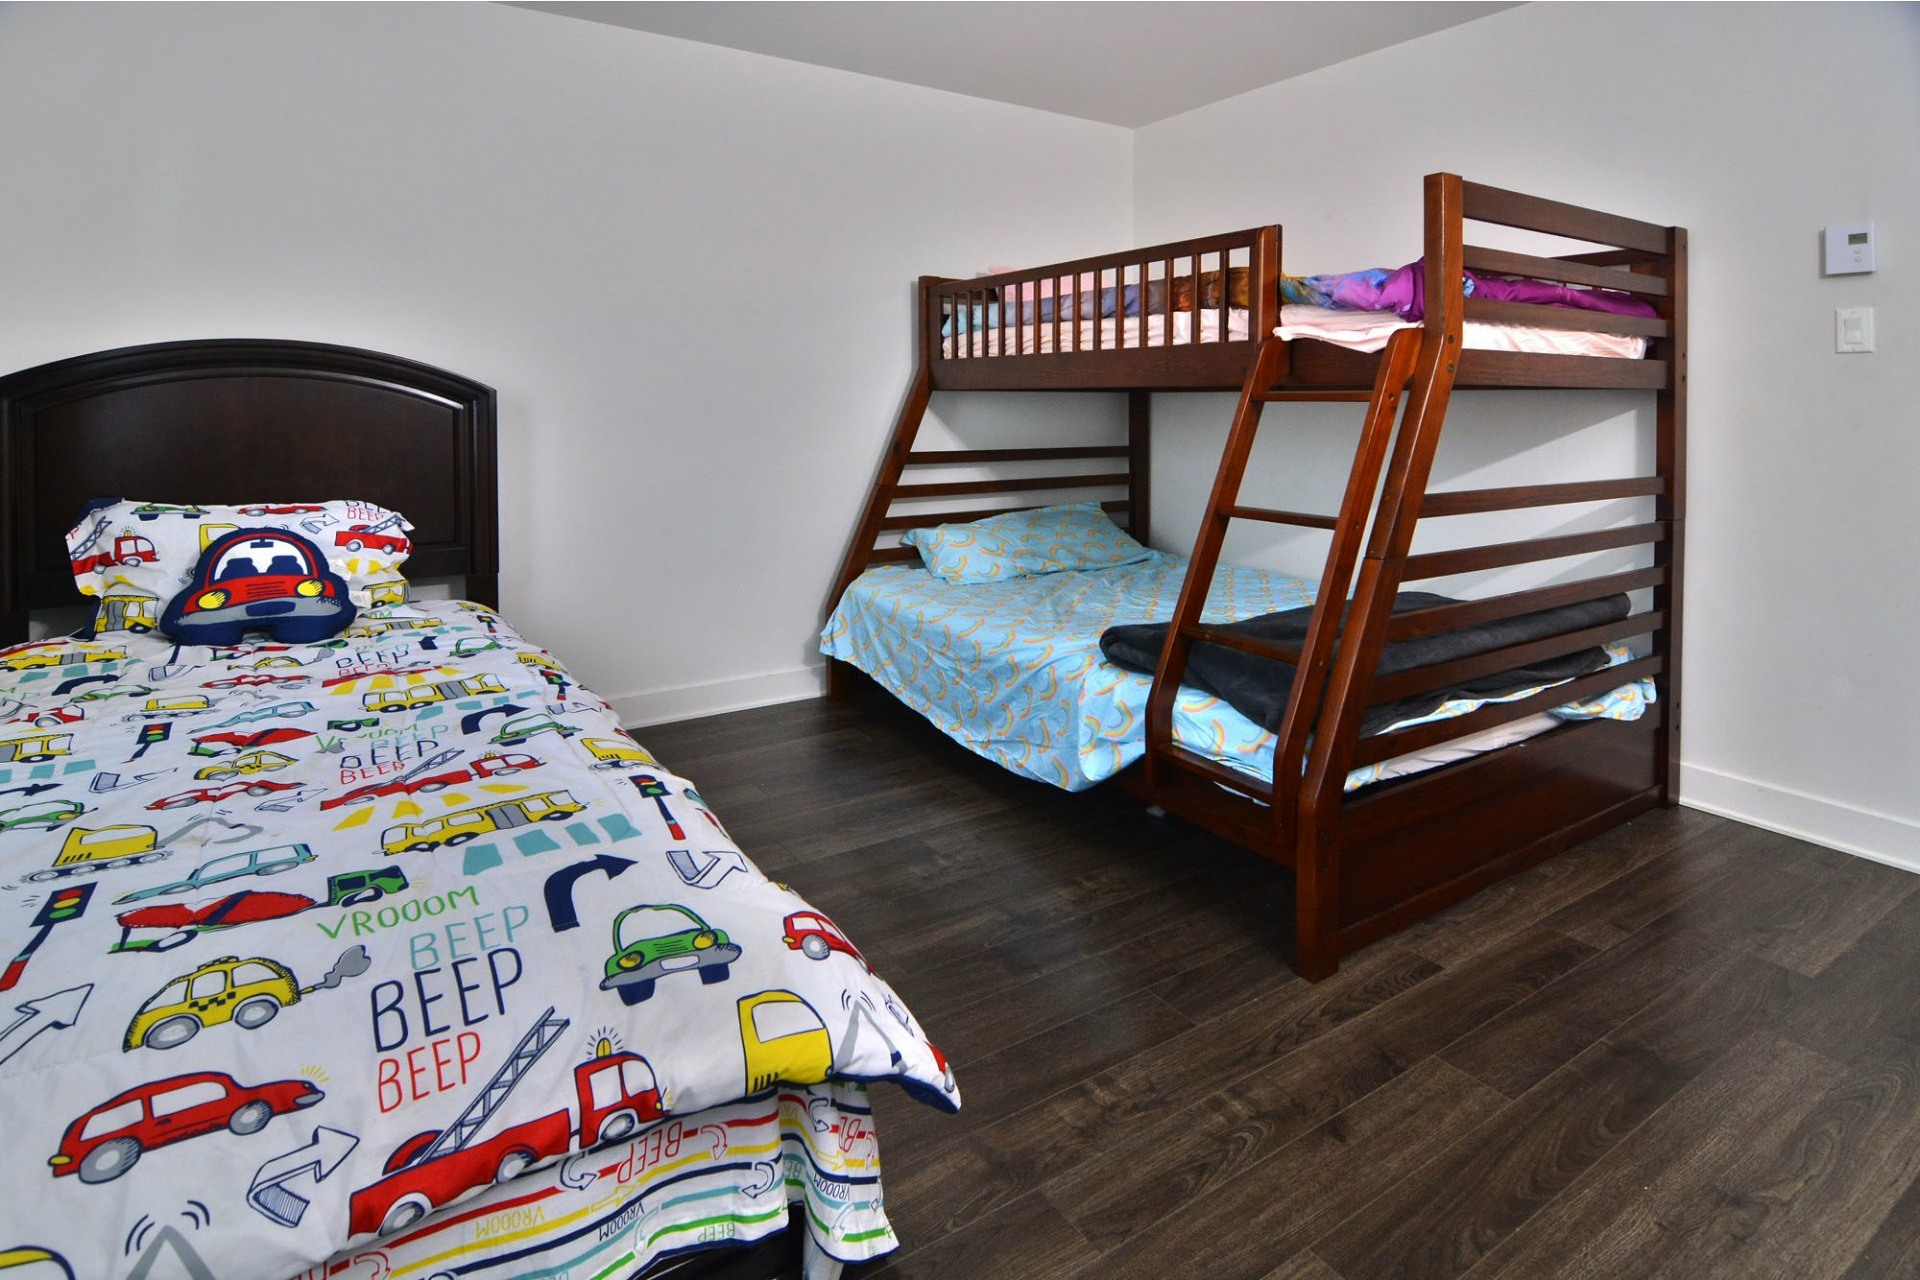 image 19 - House For sale Vaudreuil-Dorion - 7 rooms